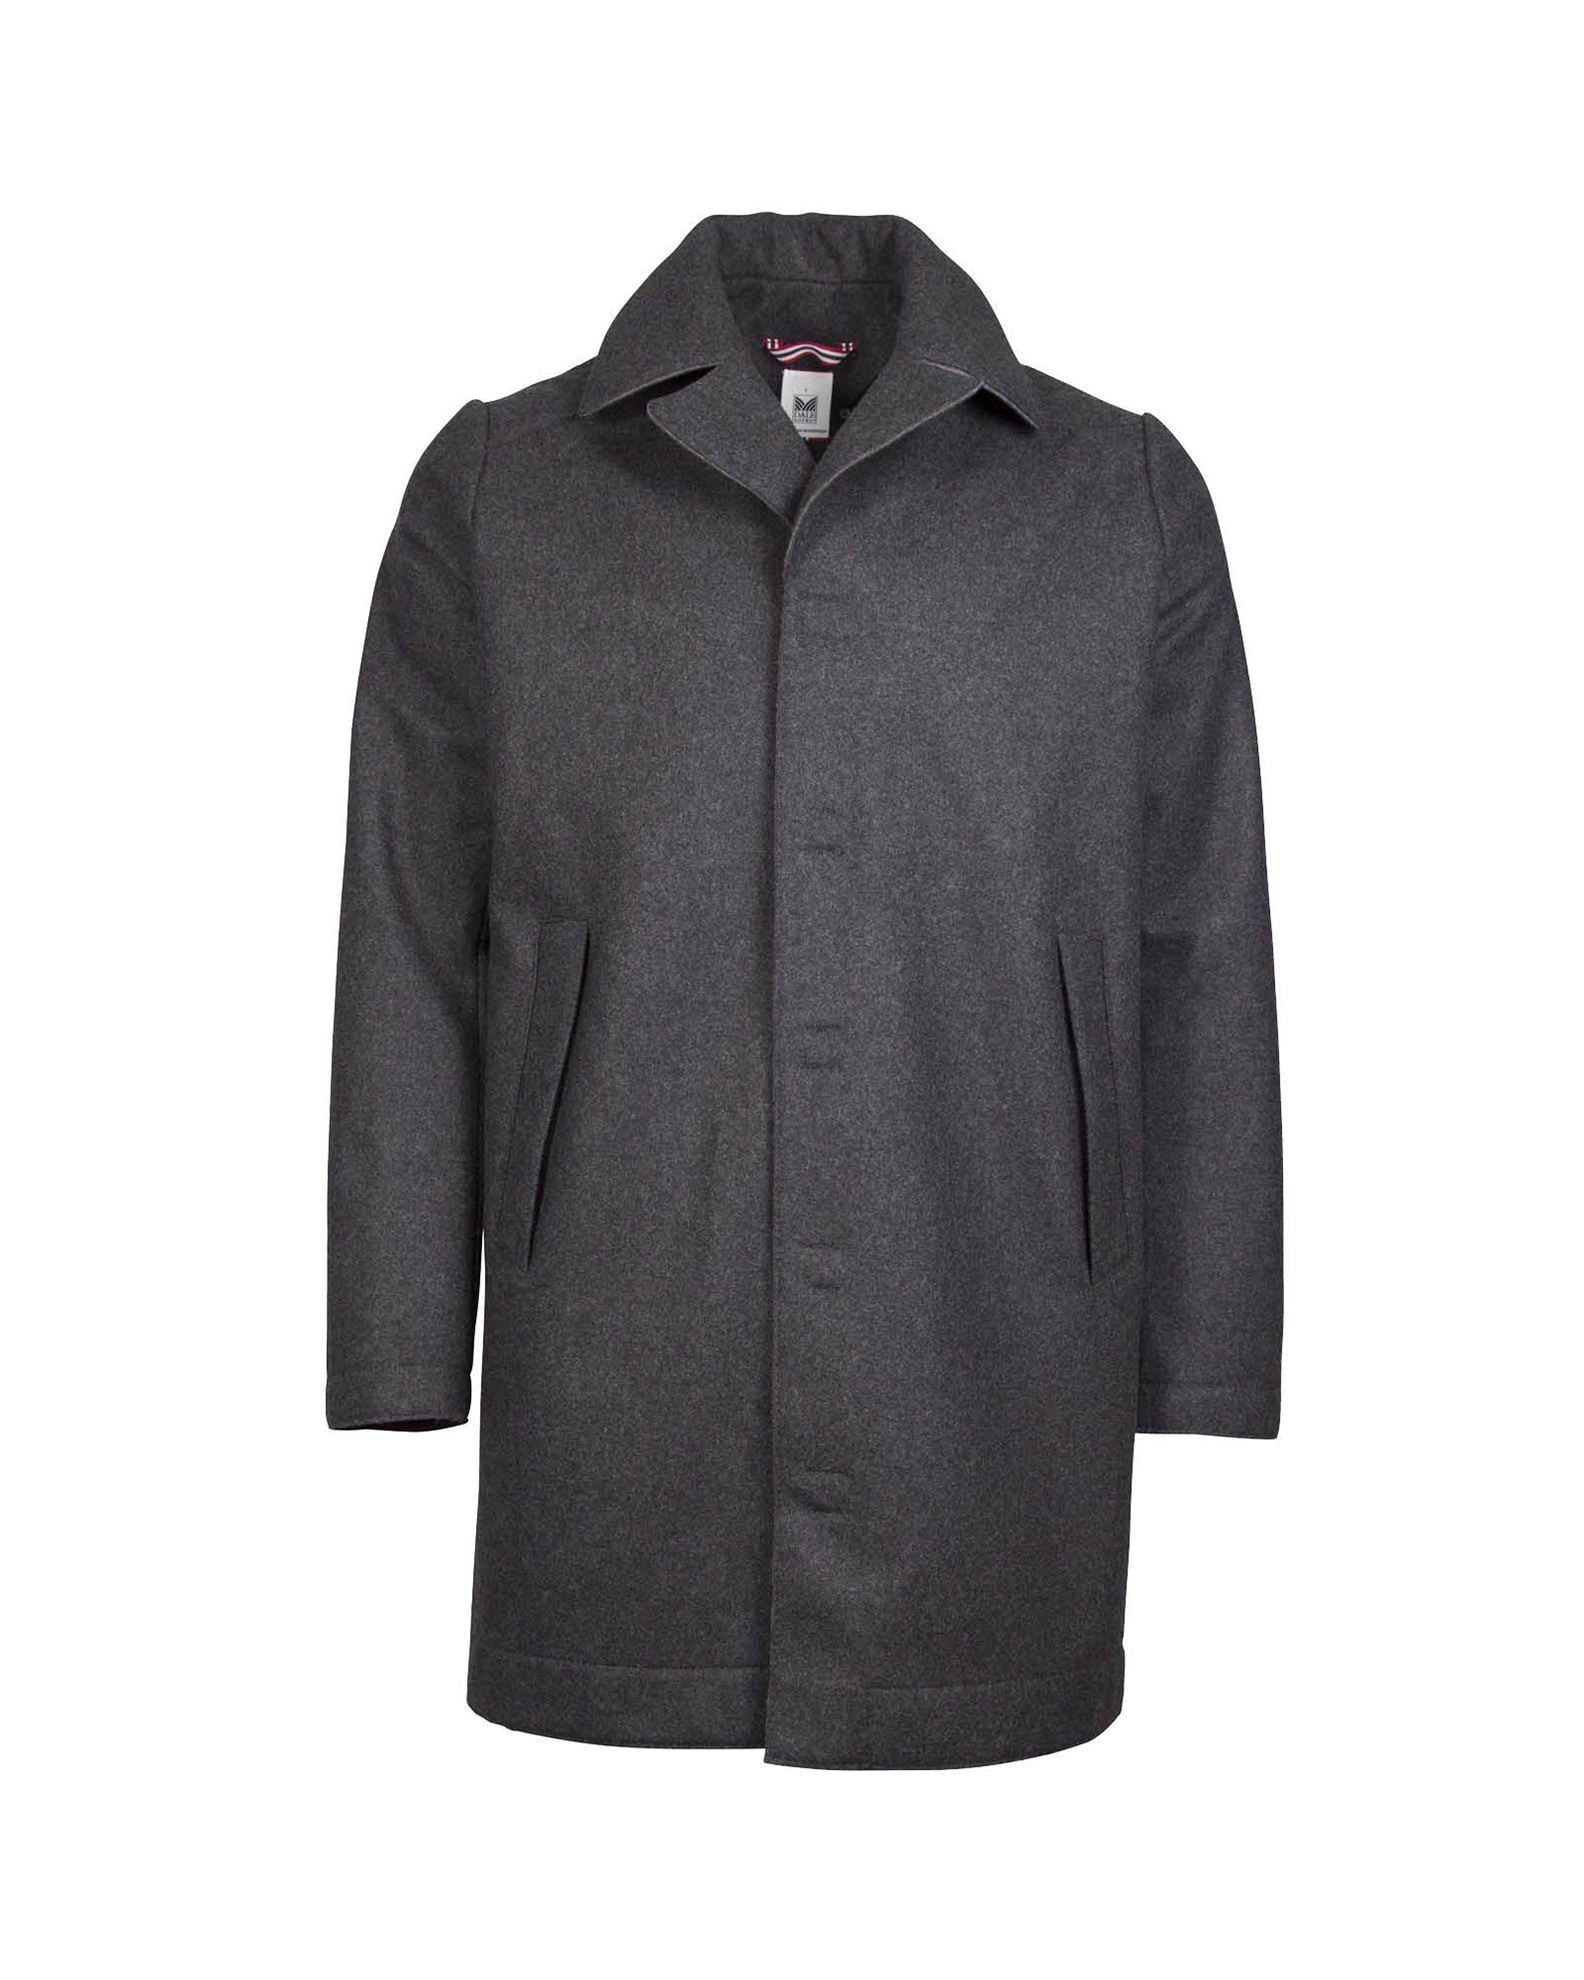 Dale of Norway Yr Weatherproof Jacket